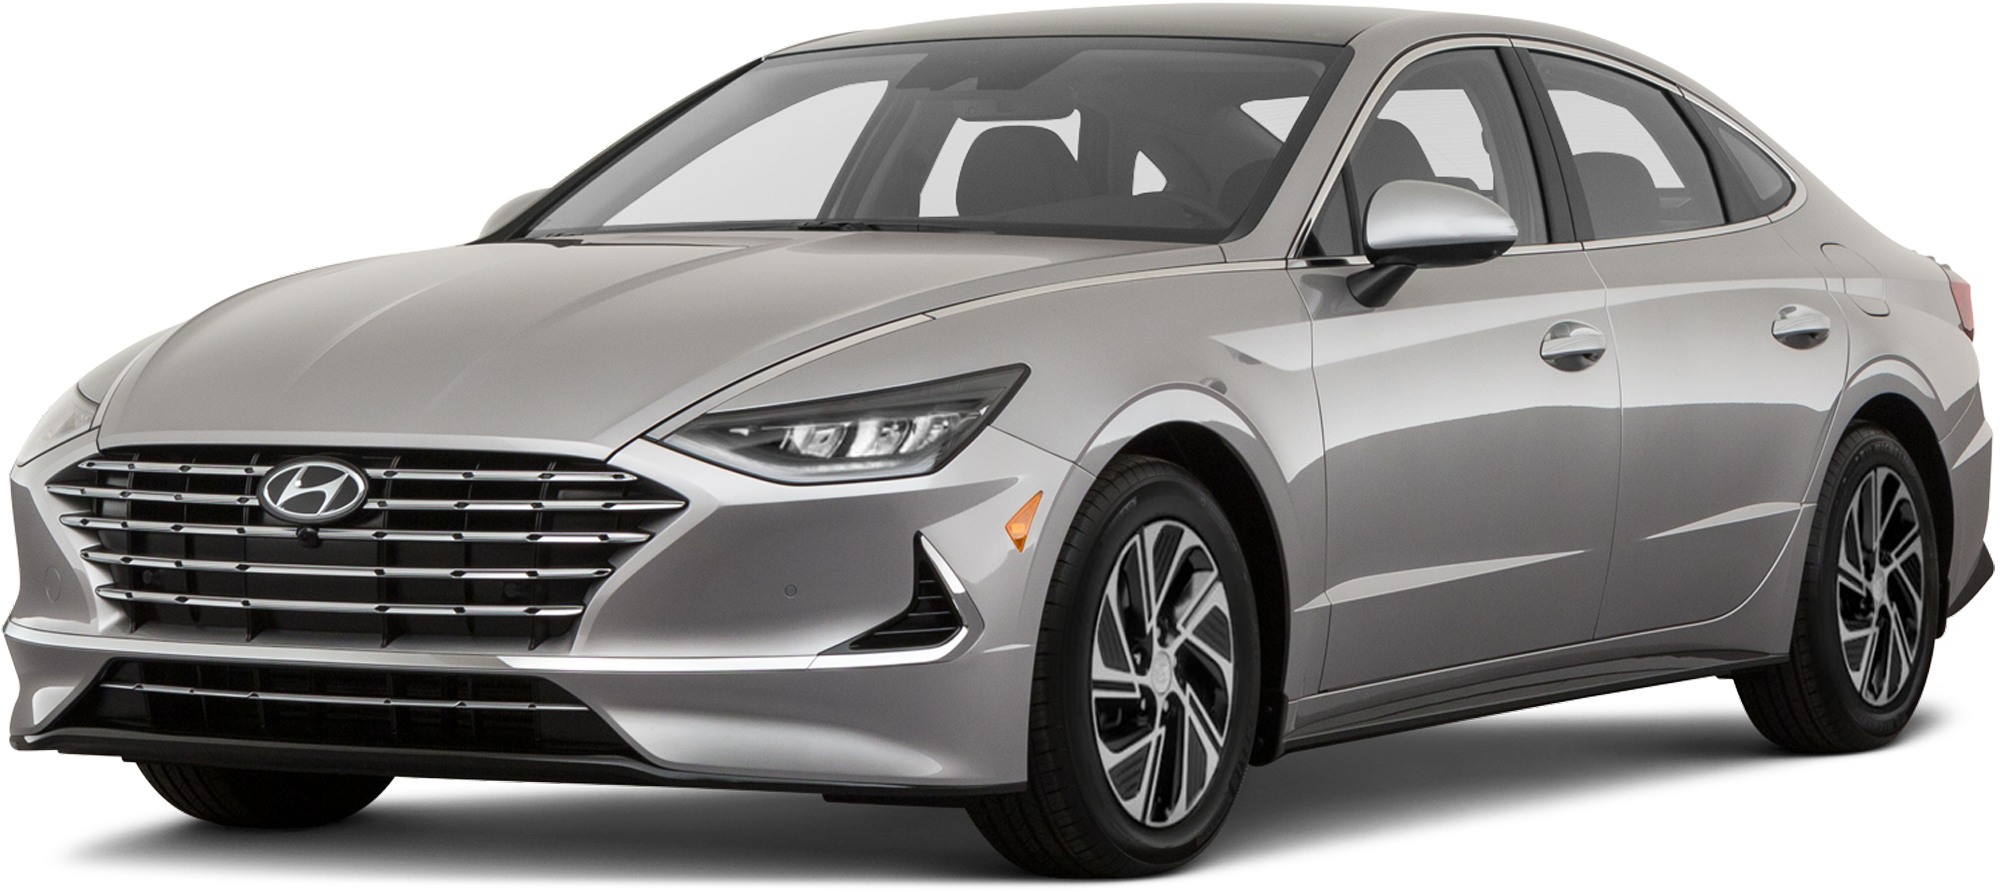 2020 hyundai sonata hybrid incentives specials  offers